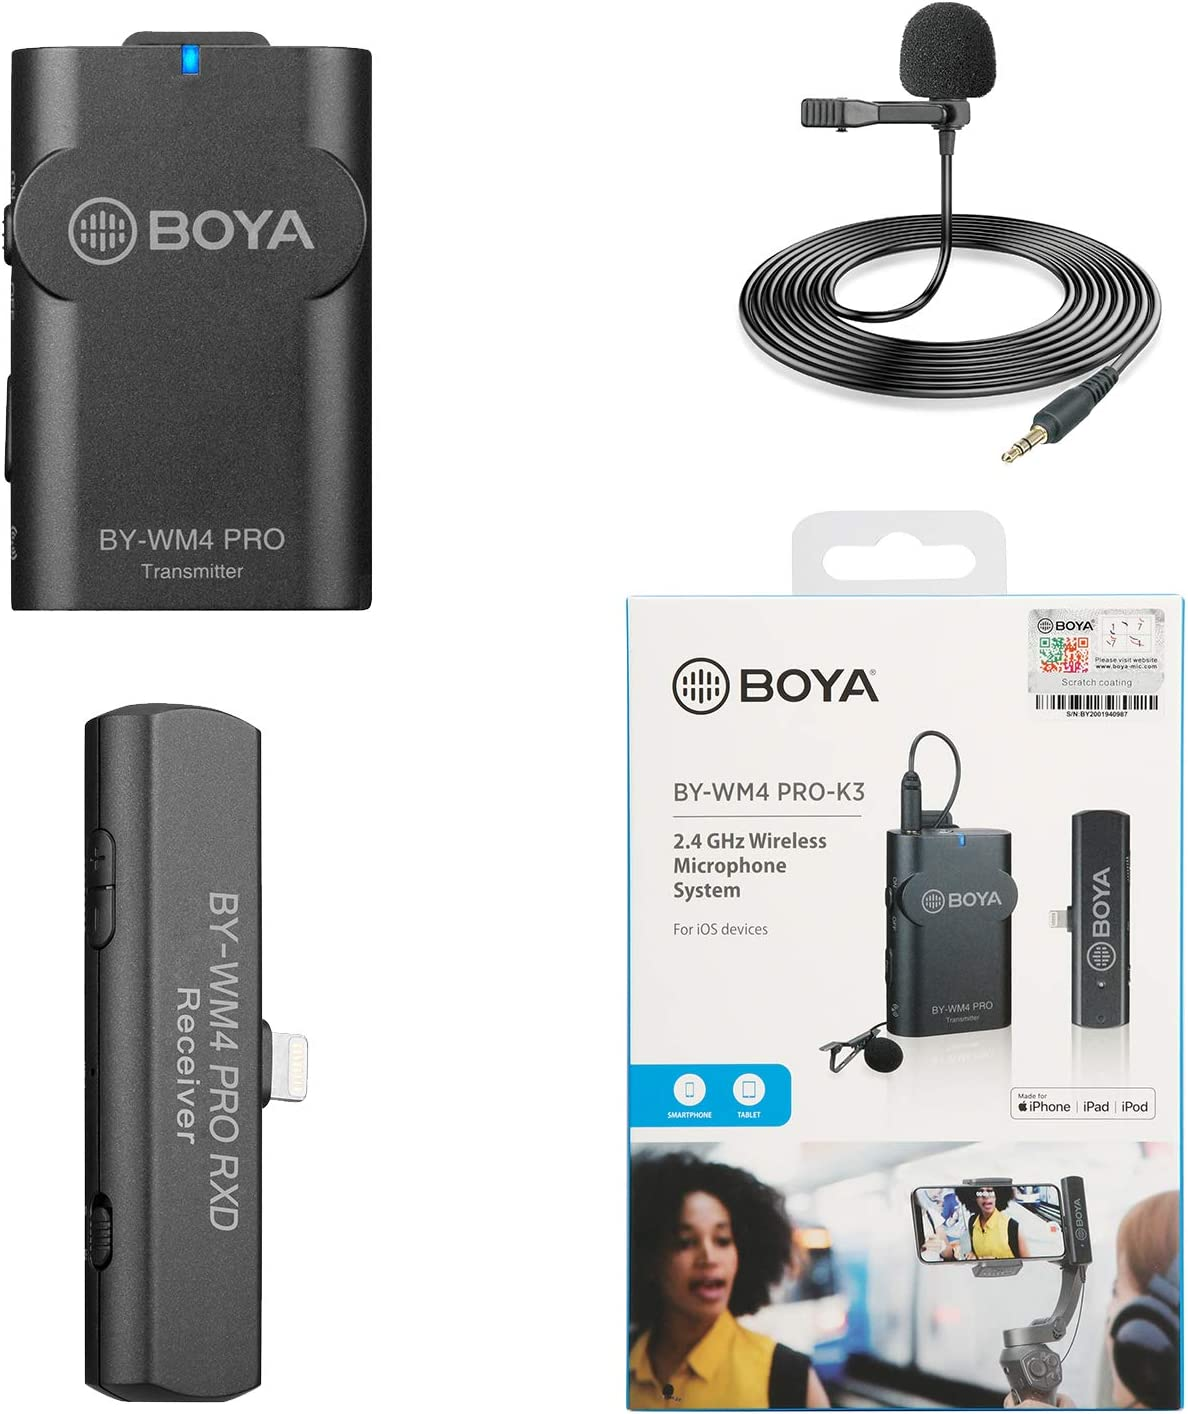 BOYA by-WM4 Pro Wireless Lavalier Microphone System with Lightning Connector Receiver for iPhone iPad iOS Podcast Facebook YouTube Live Stream Video Recording